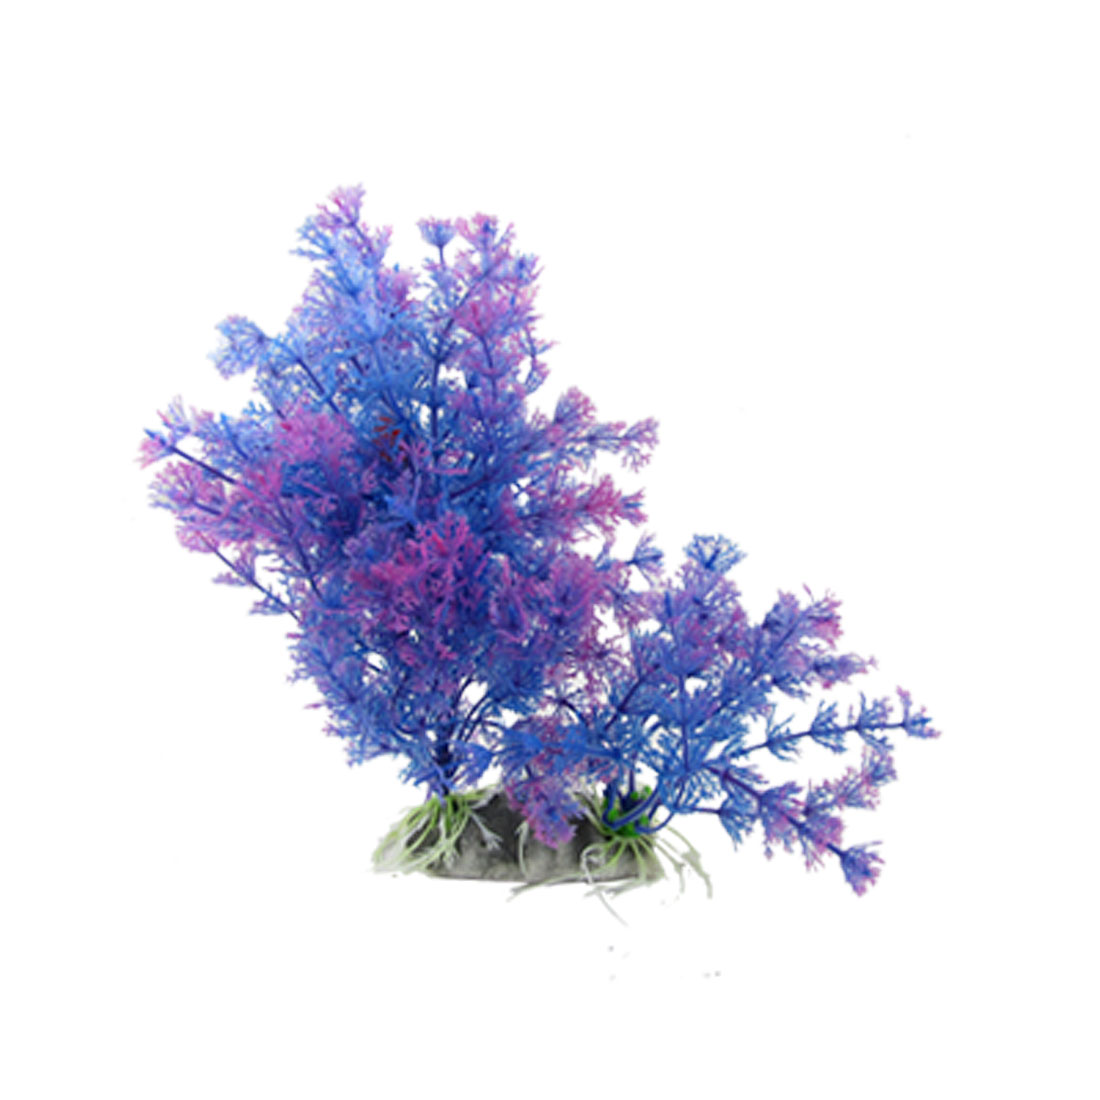 Indigo Blue Aquascaping Plants Ornament for Fish Tank